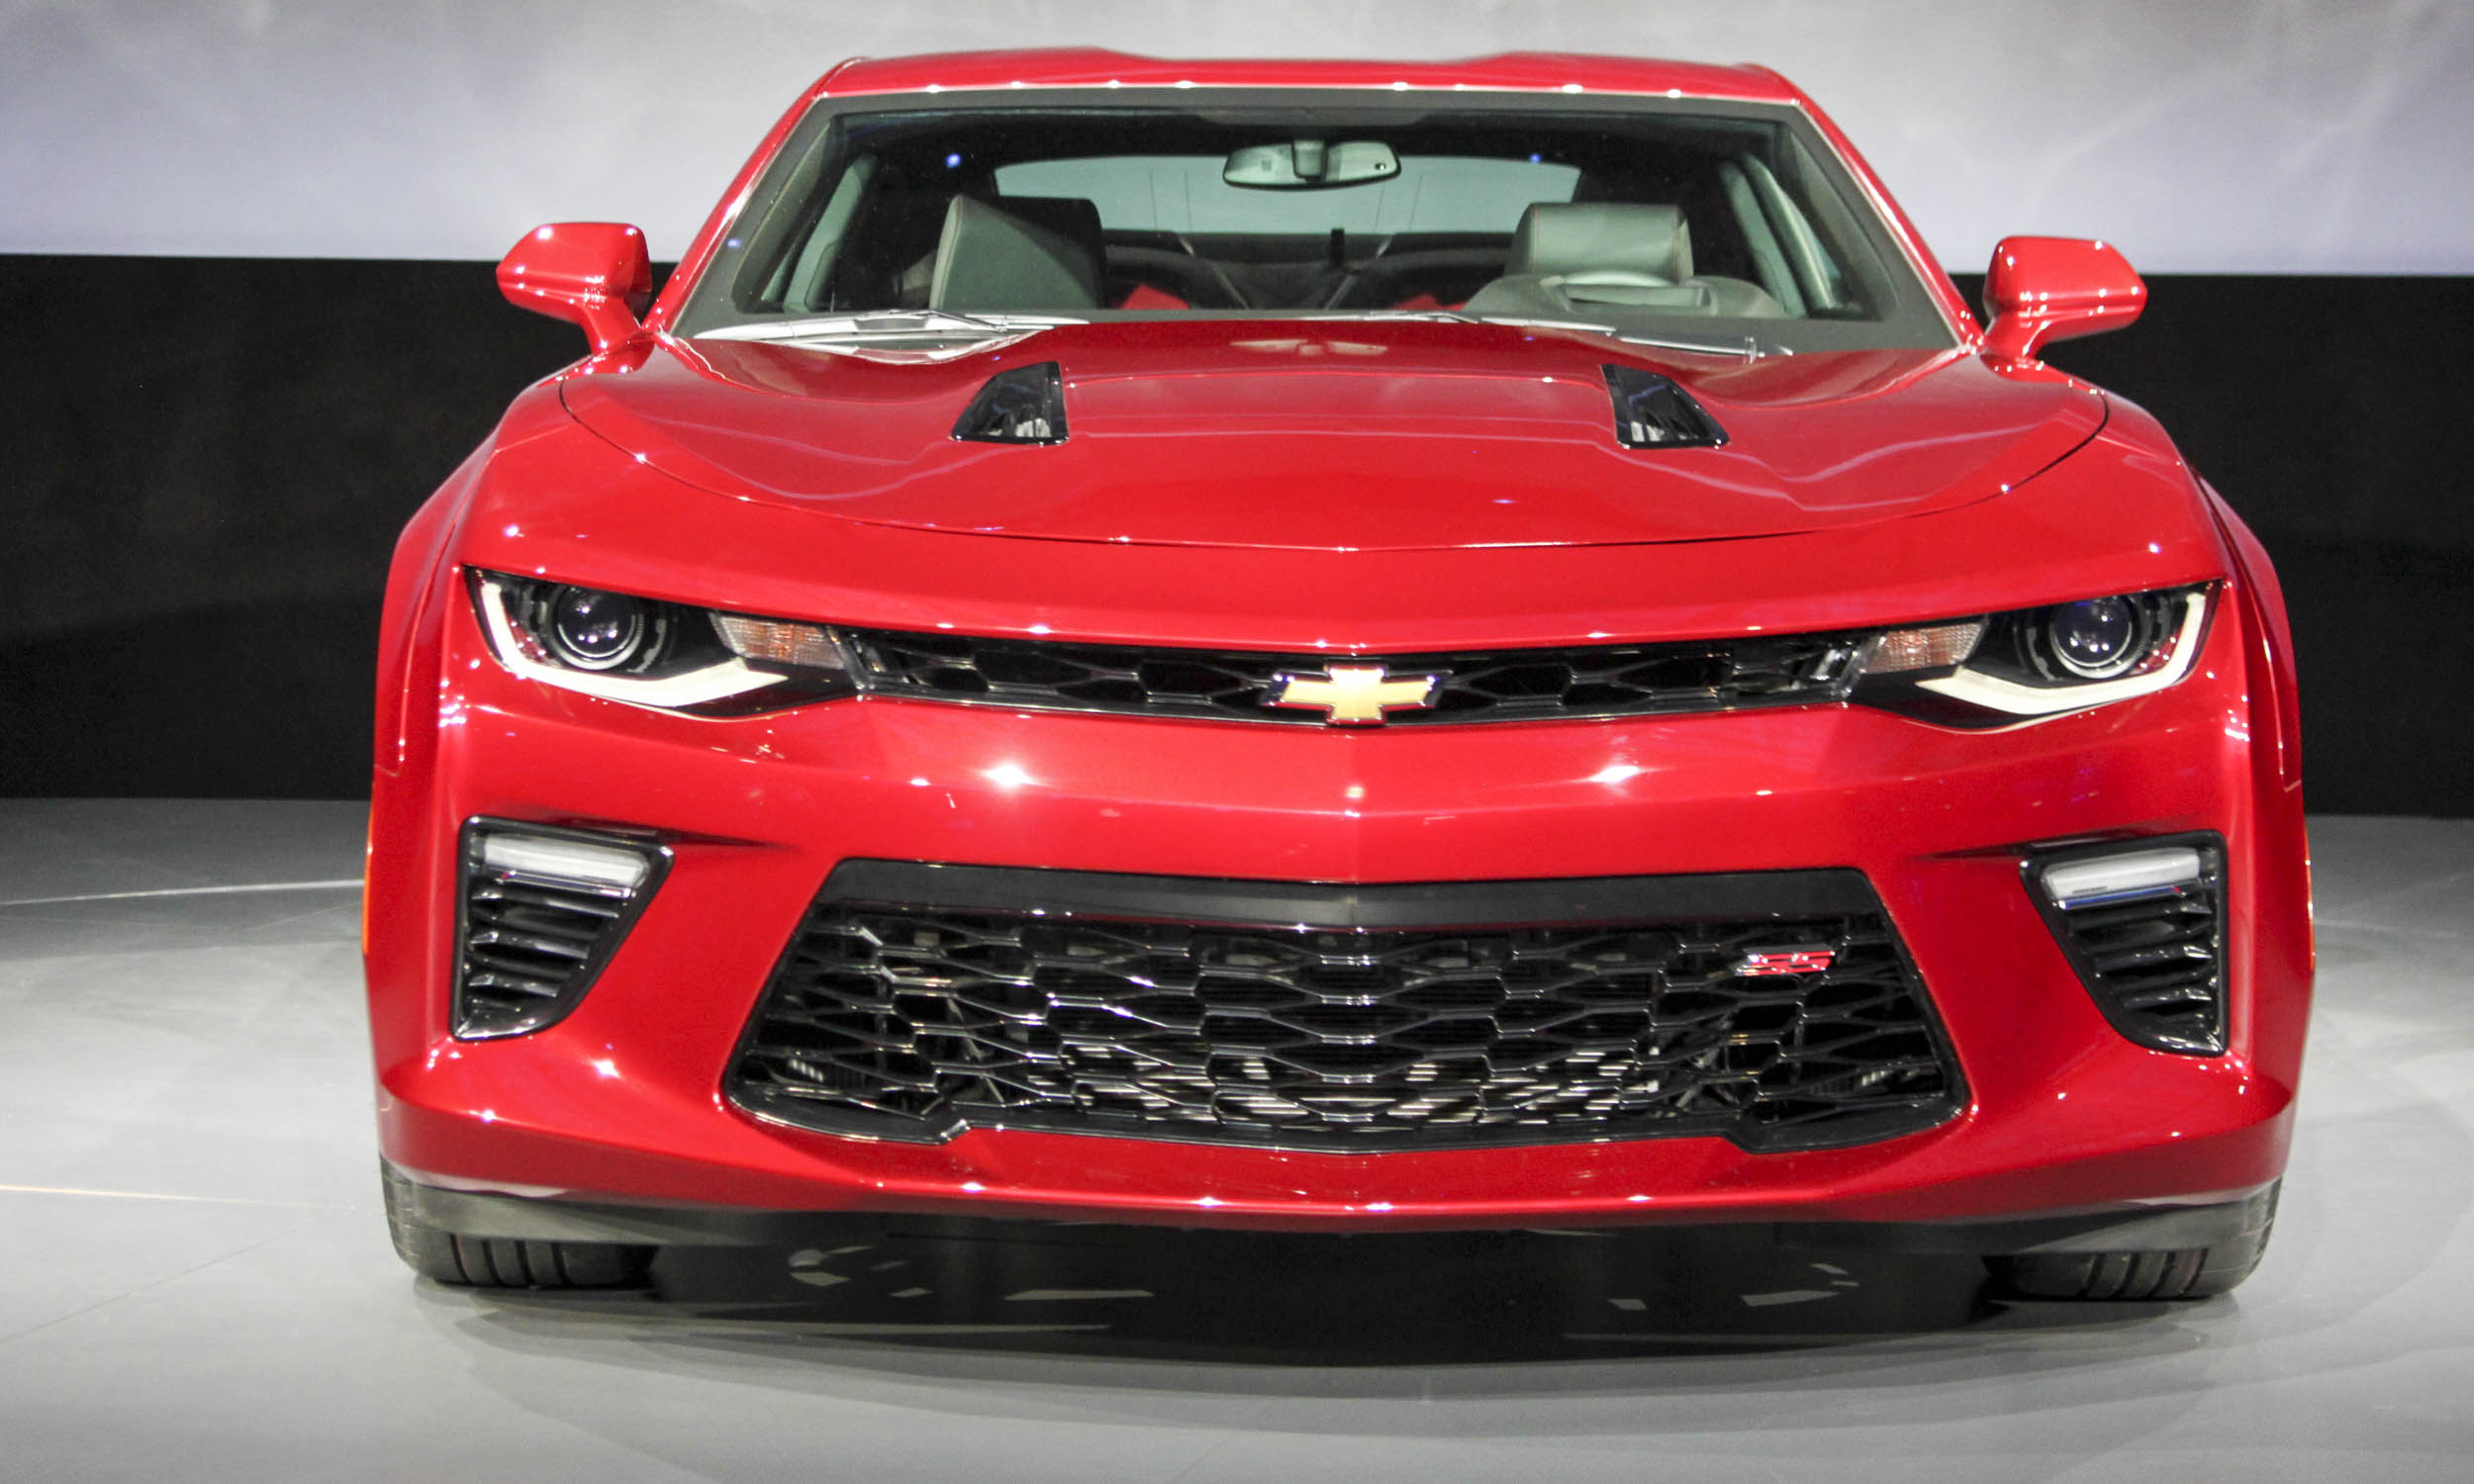 2016 Chevrolet Camaro Ss Front End Design (Photo 50 of 54)